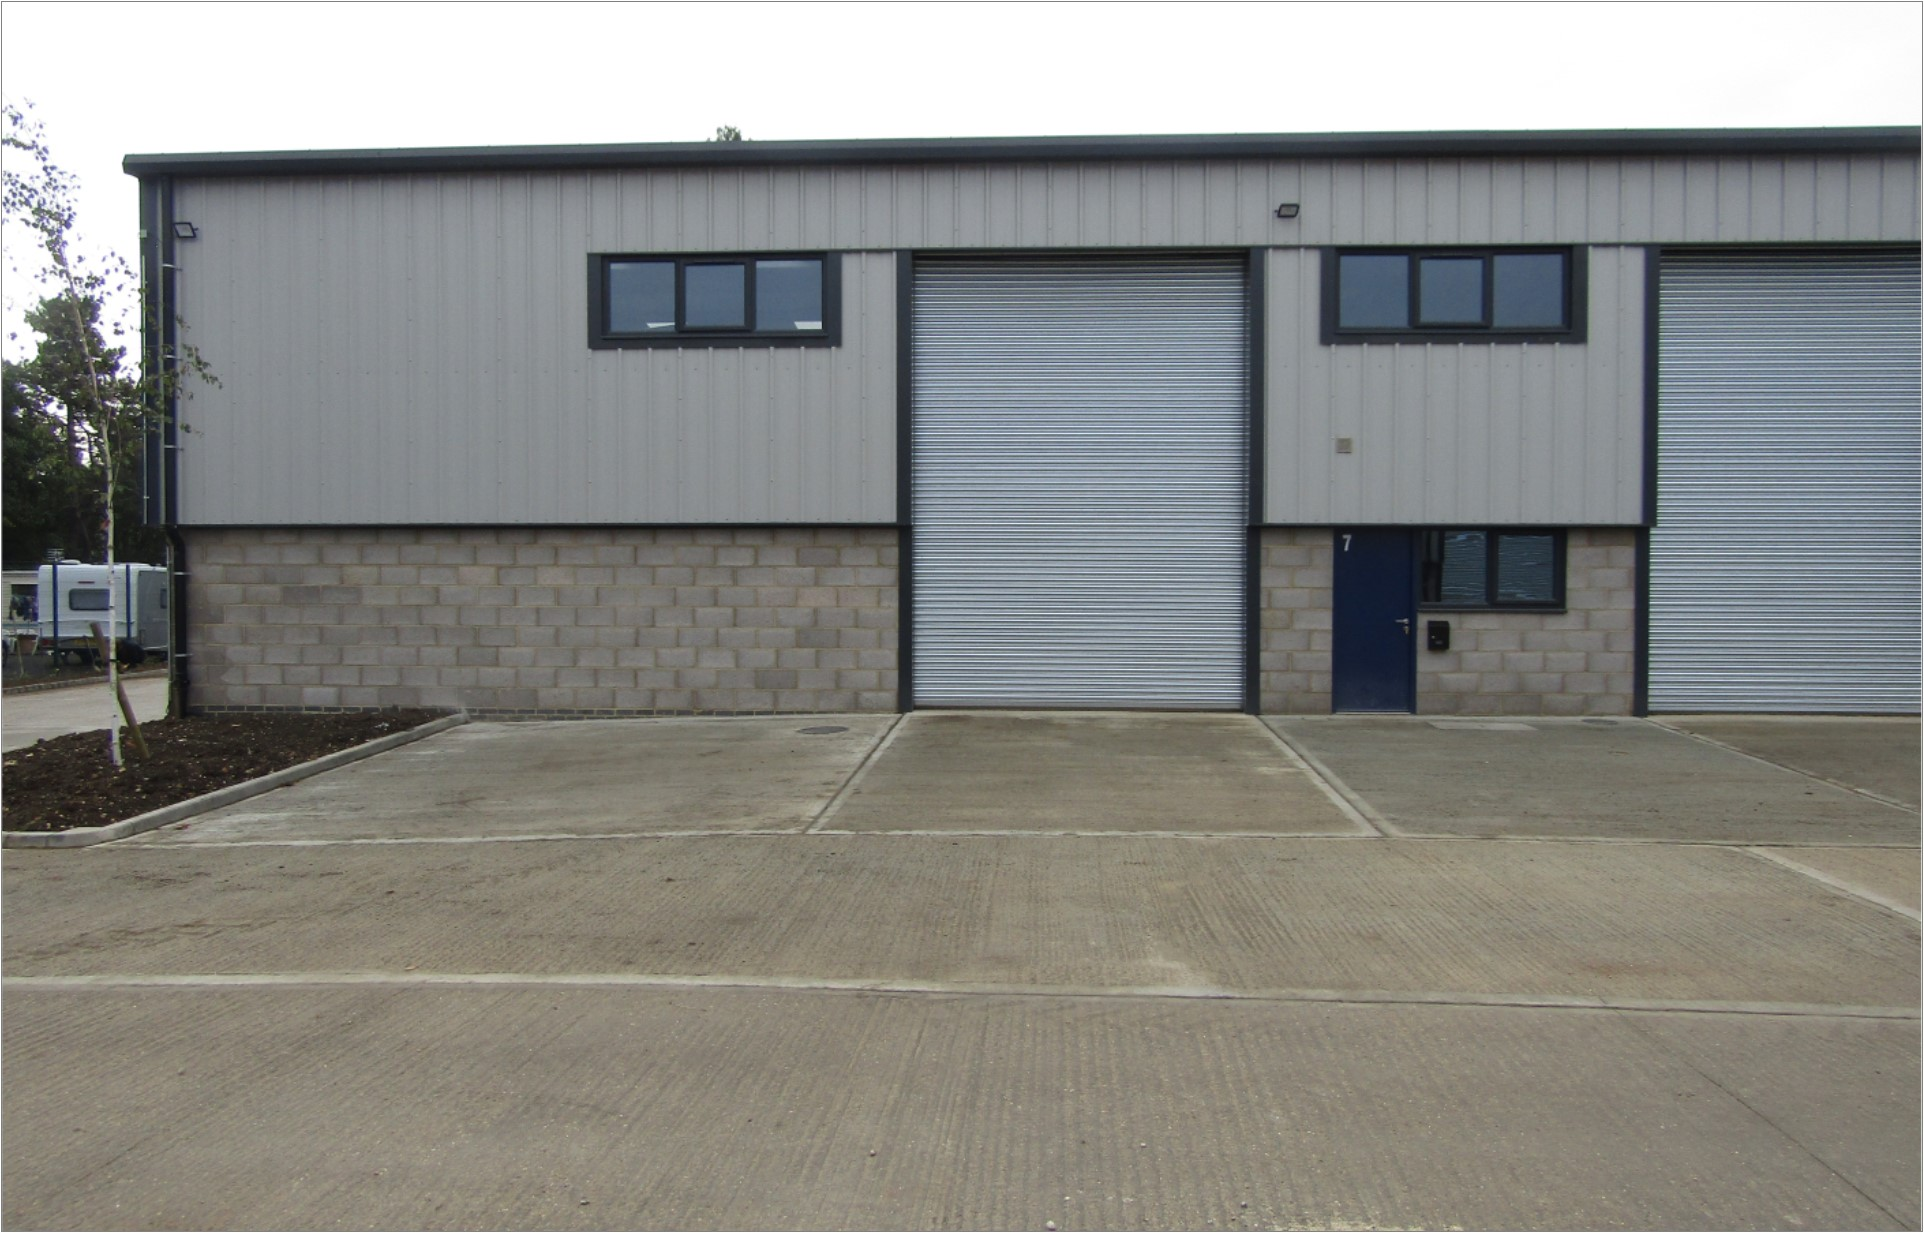 Unit 7, The Firs, Watermill Industrial Estate, Aspenden Road, Buntingford